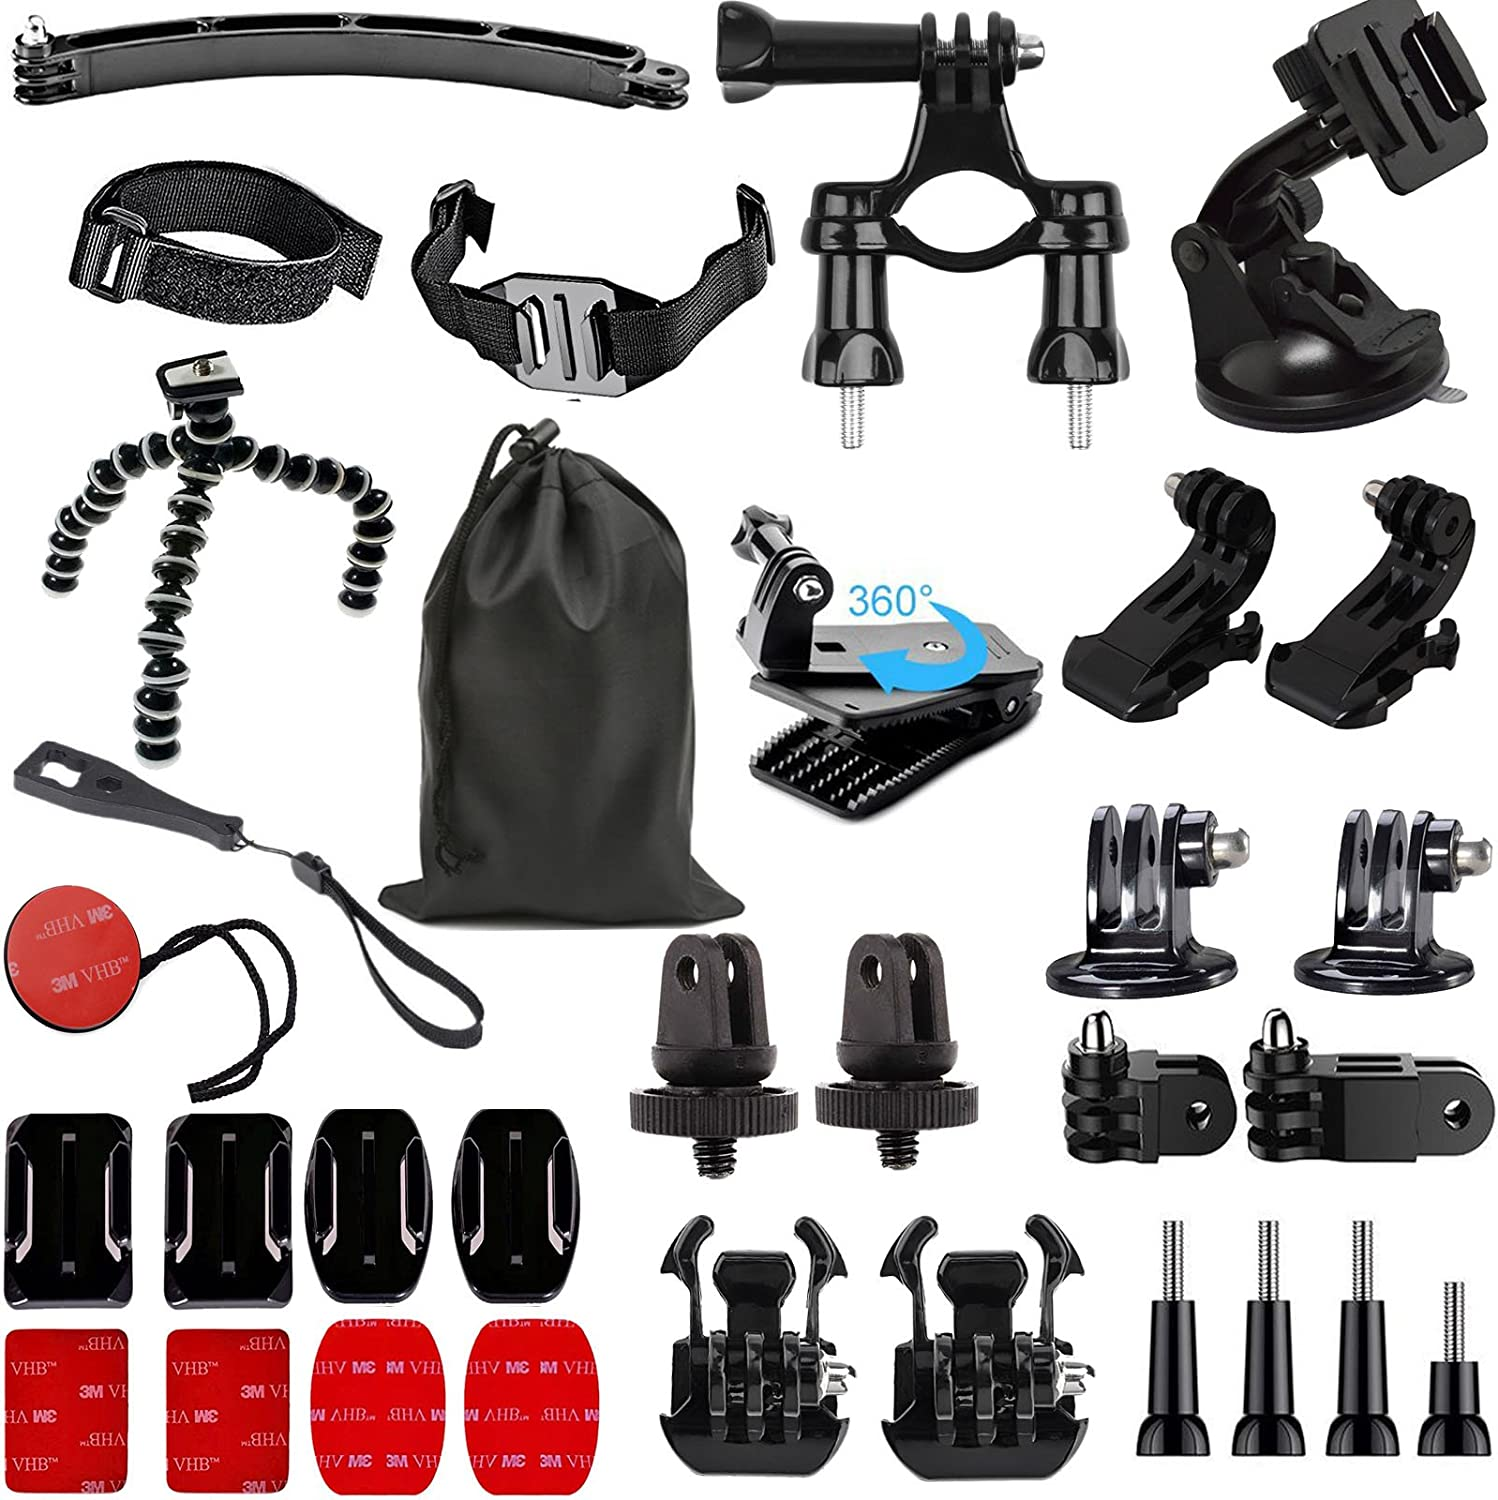 SUNMENCO 32-in-1 Action Camera Accessories Adhesi Helmet favorite 3M SEAL limited product Kits